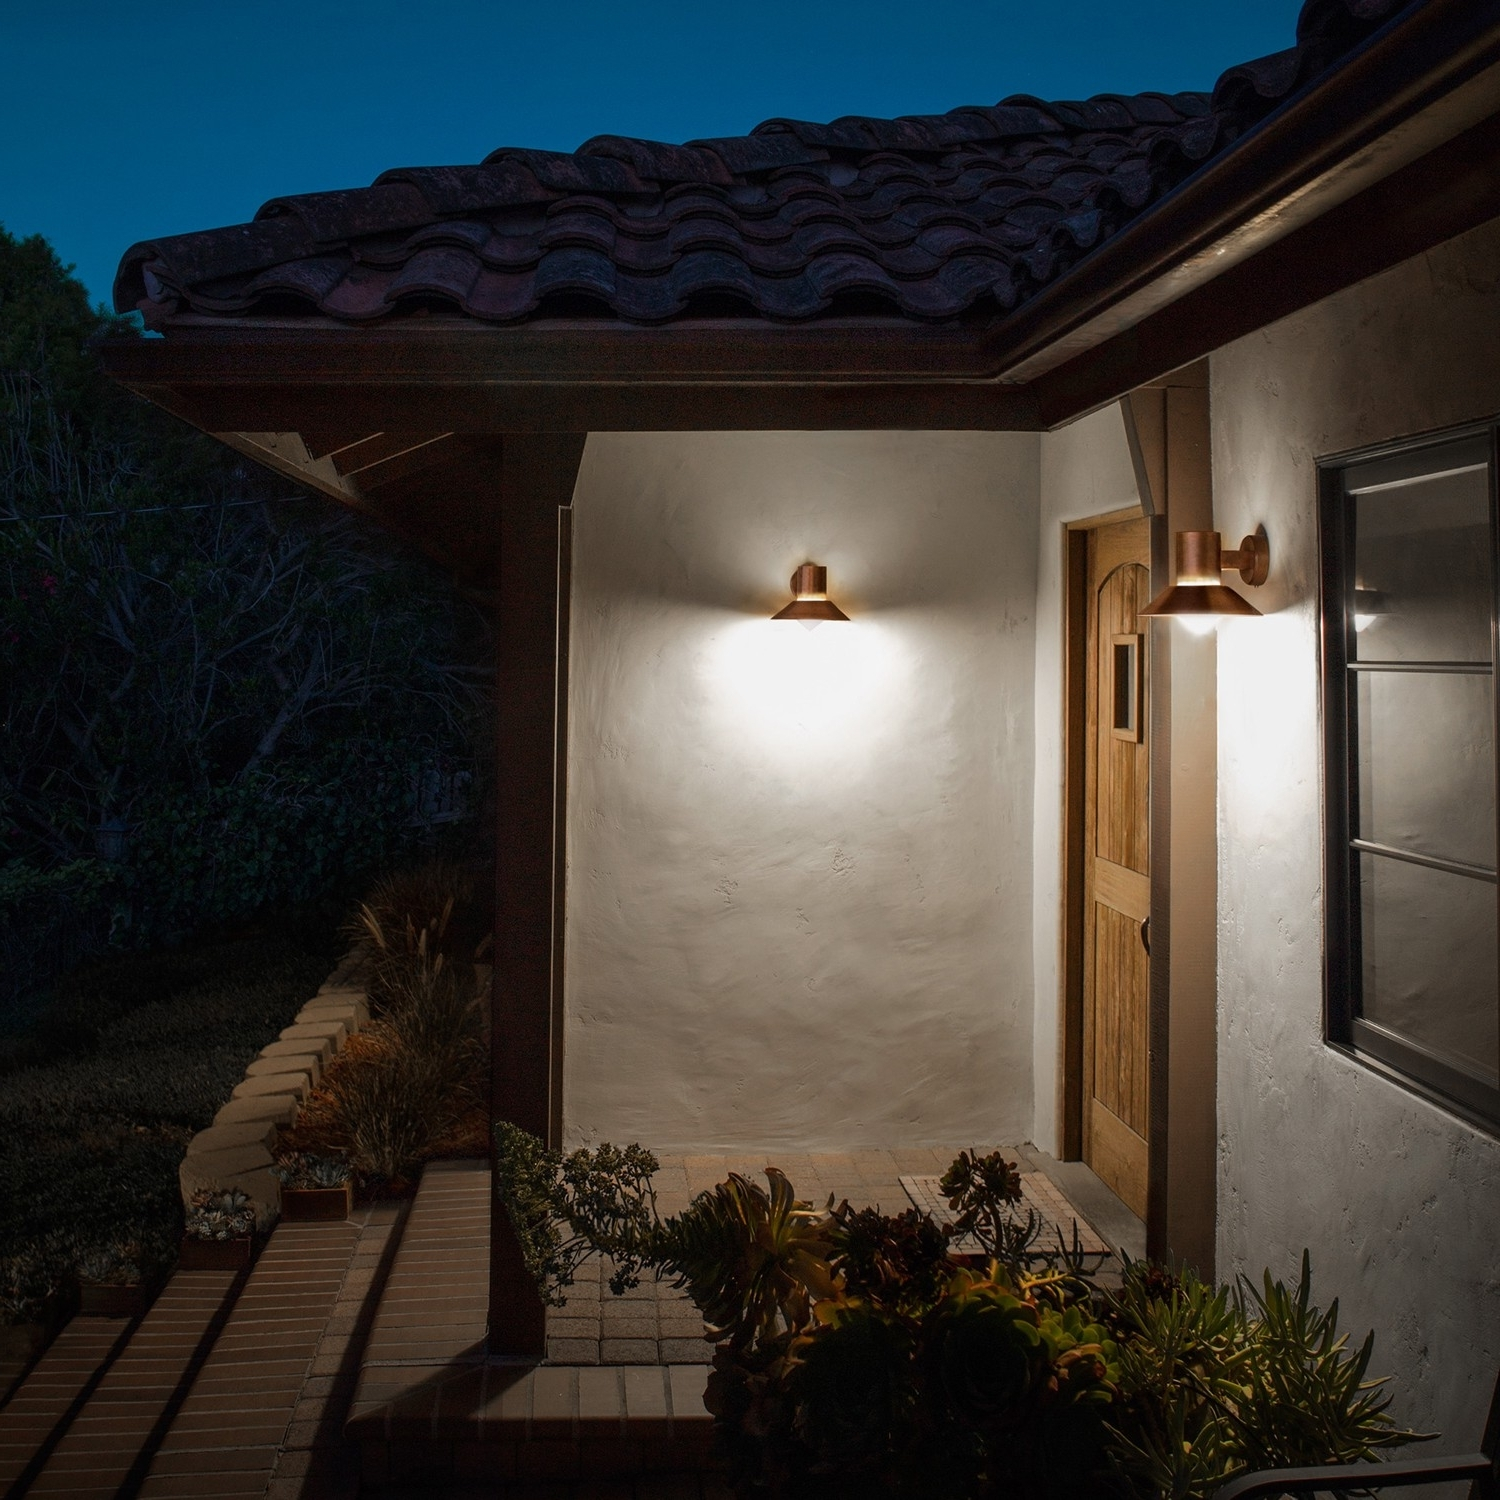 Contemporary Outdoor Wall Lighting Fixtures Intended For Most Up To Date How To Choose Modern Outdoor Lighting (View 4 of 20)